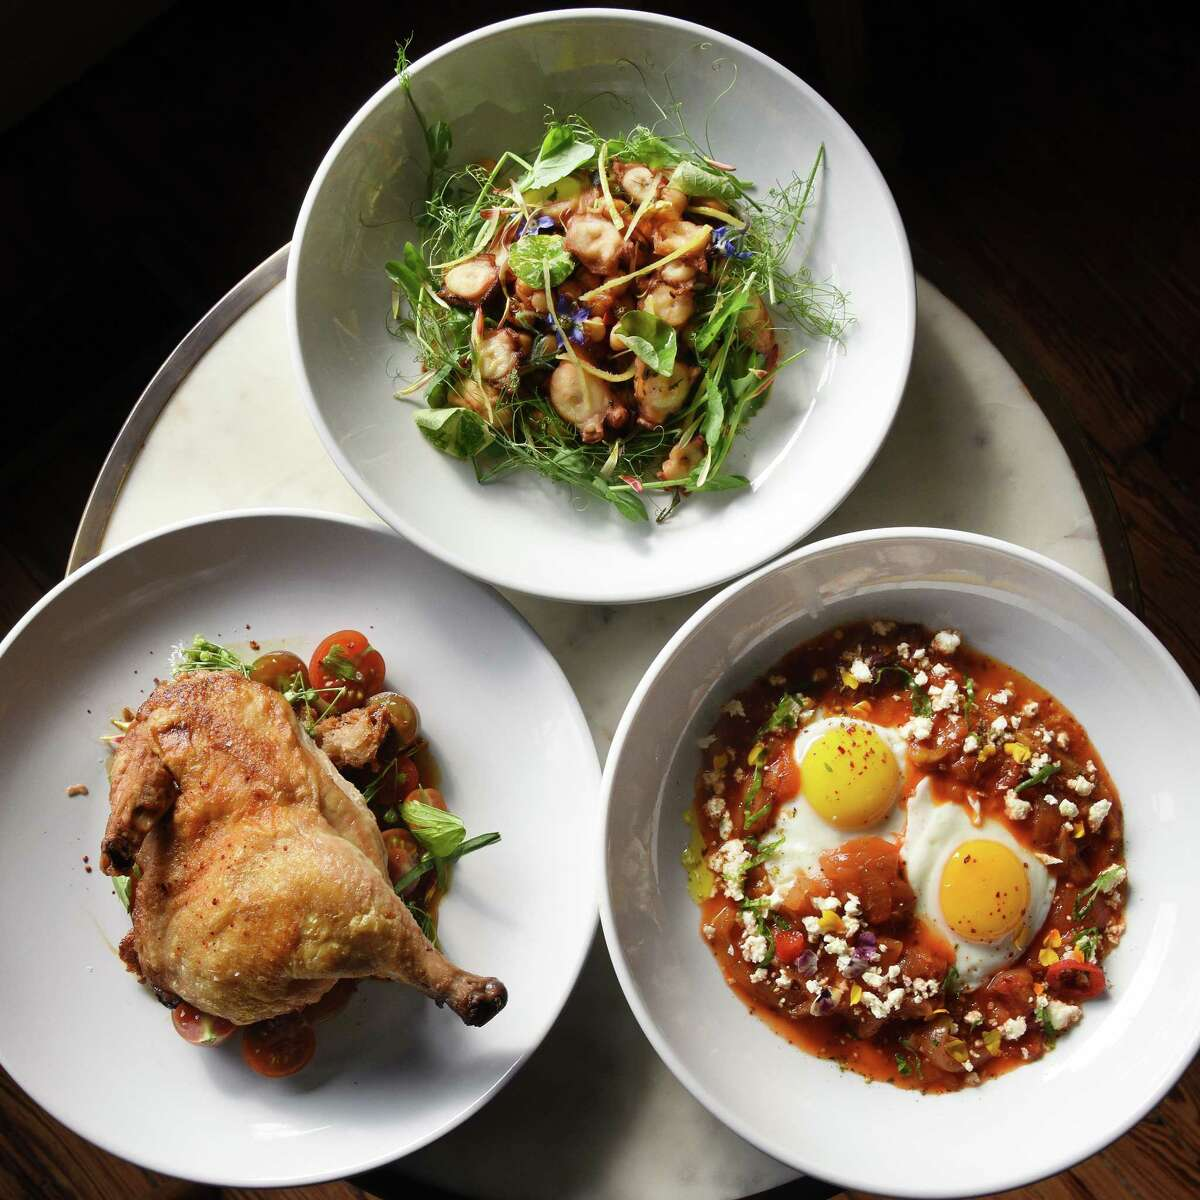 Octopus salad, top, roasted chicken and Shakshuka, right, at Le Perche restaurant on Warren Street Thursday Sept. 27, 2018 in Hudson, NY. (John Carl D'Annibale/Times Union)